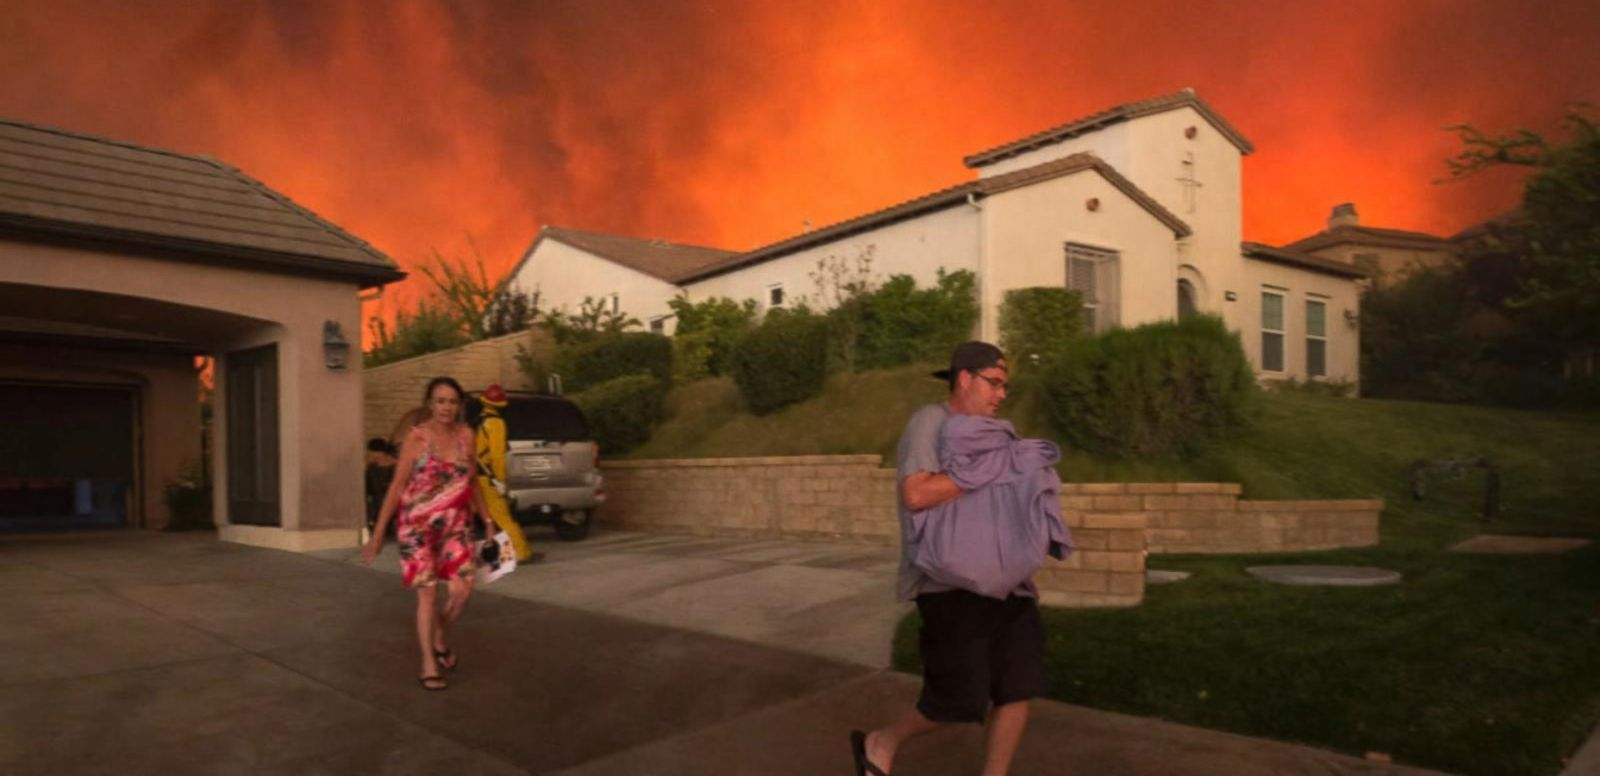 VIDEO: Raging Wildfires Burn Through Southern California Just 10 Miles North of LA